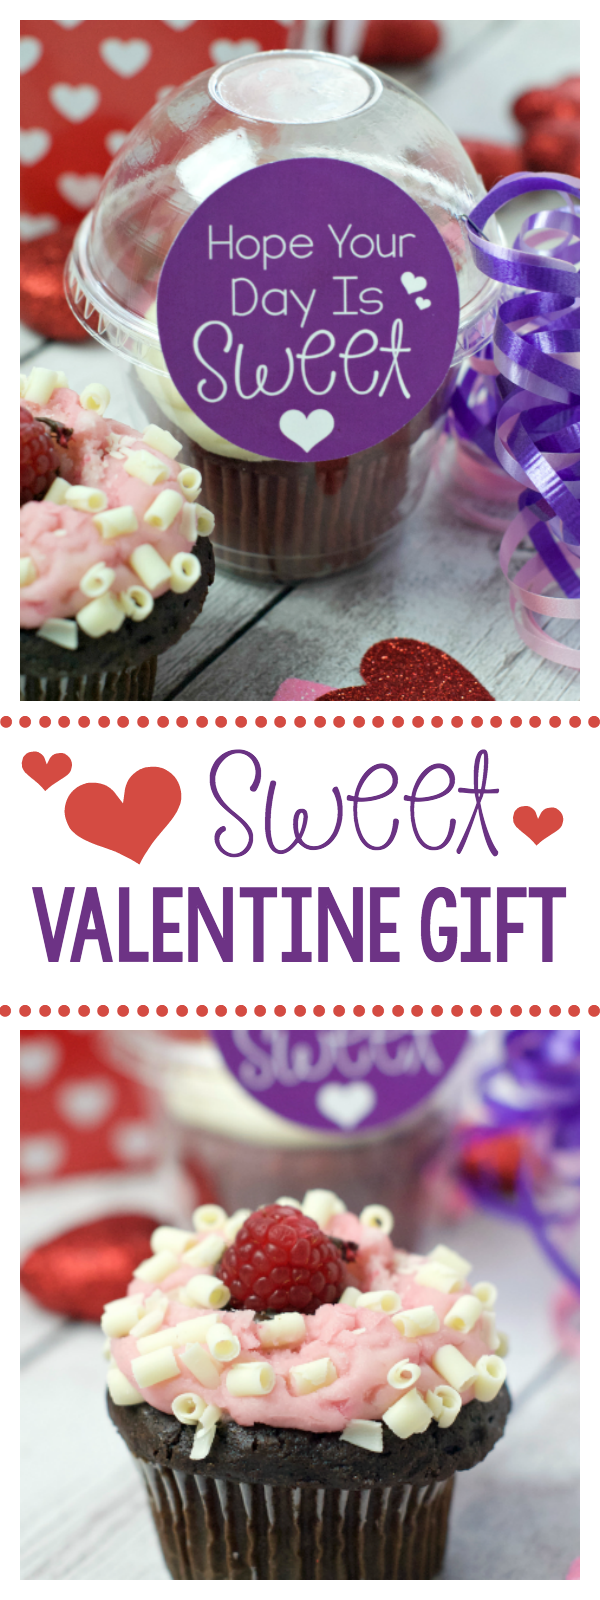 Sweet Valentine Gift for a Friend-Add this sweet tag to a sweet gift and take it to a friend or give it to your kids for Valentine's Day! #valentinesday